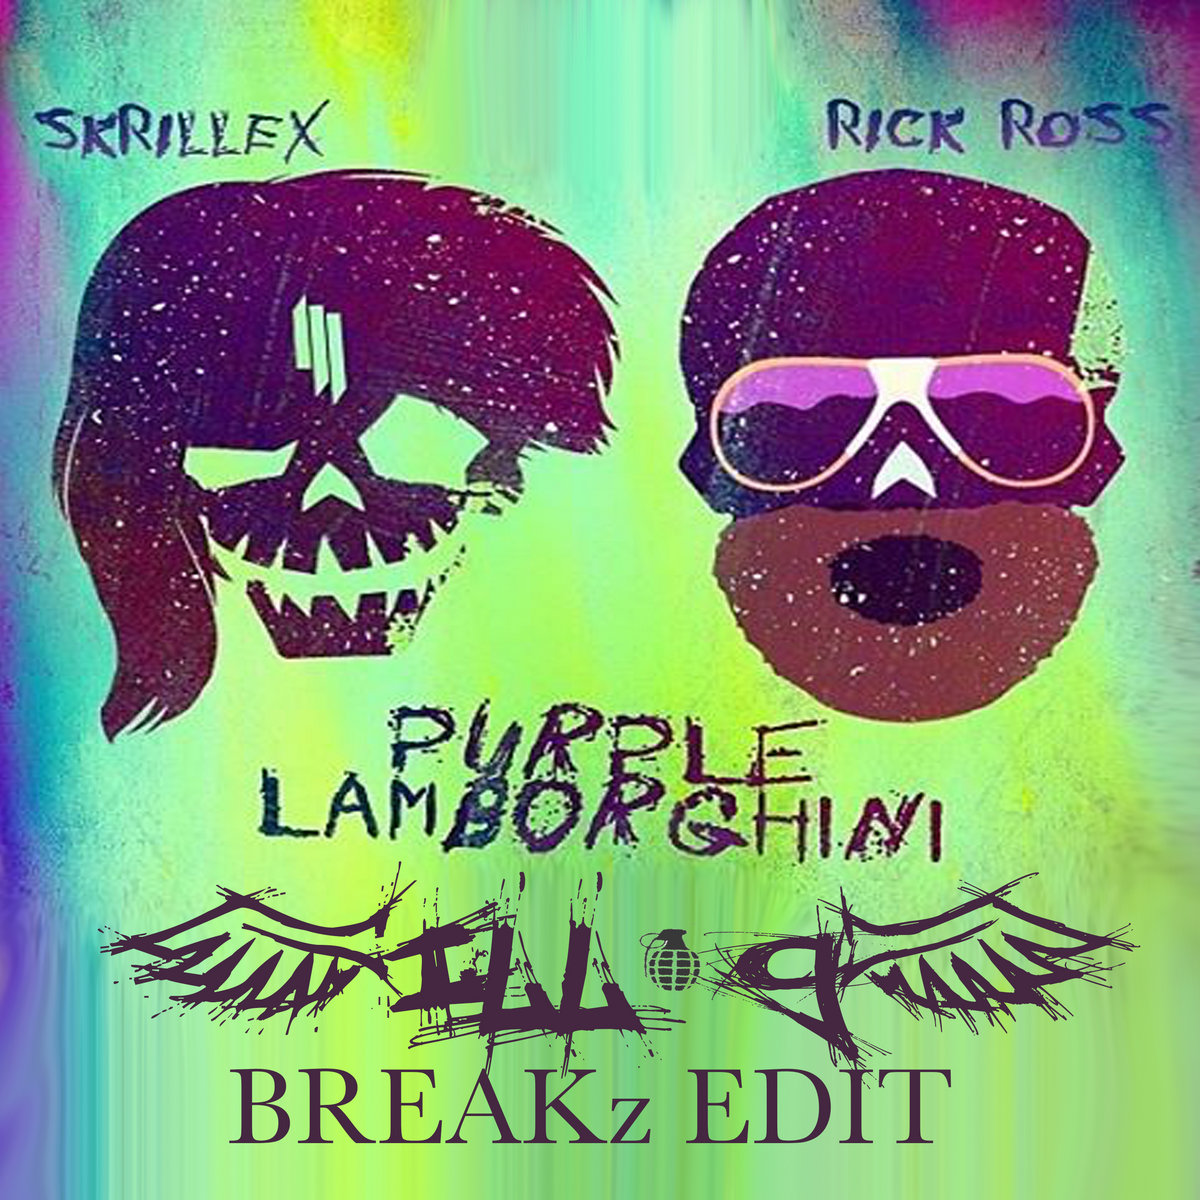 Purple Lambo Skrillex And Rick Ross Ill G Breakz Edit Ill G